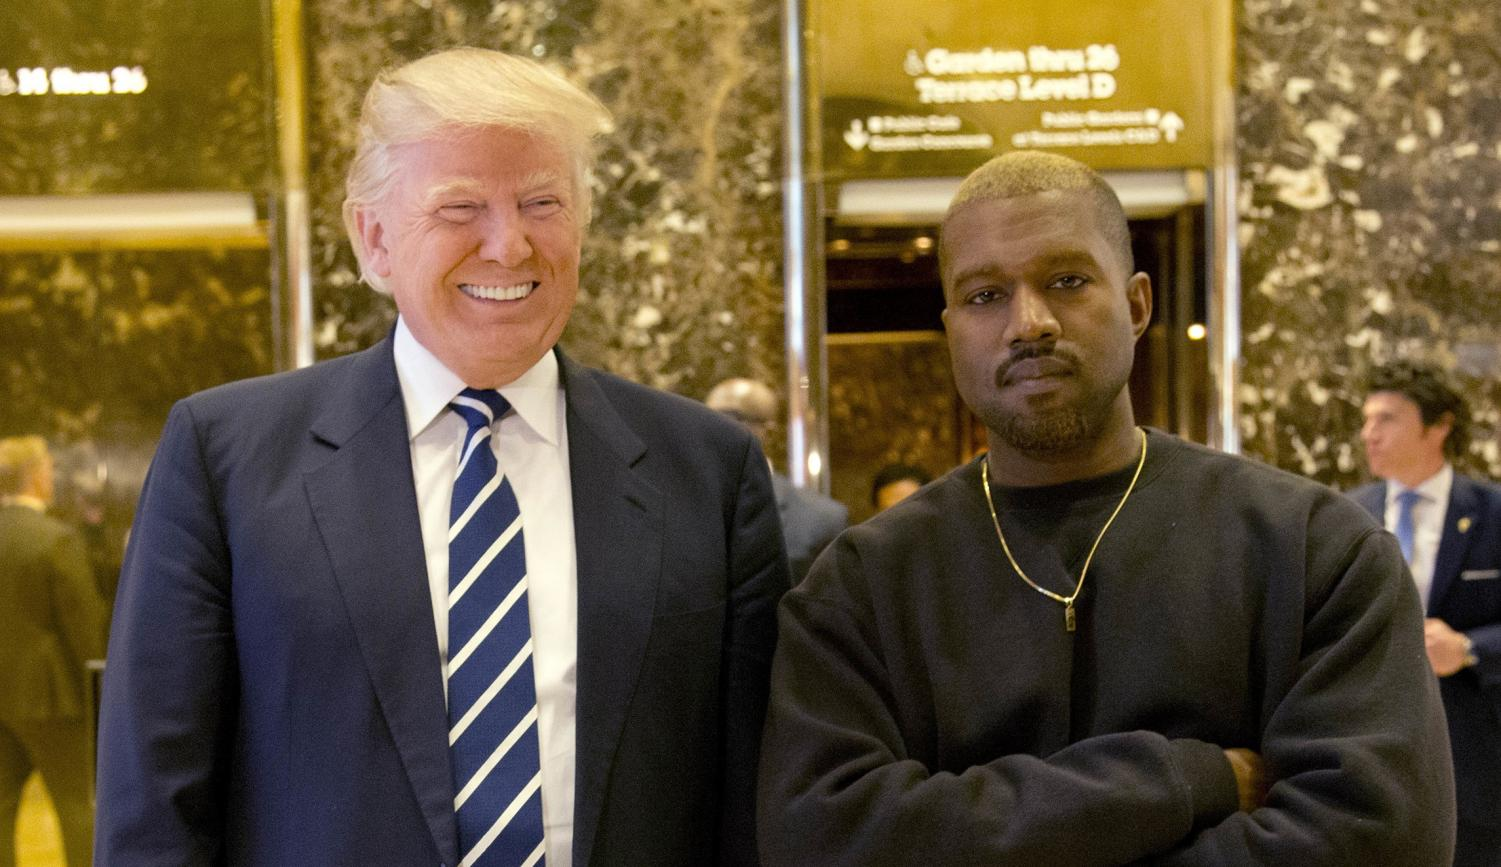 Kanye and Trump 2018  -CNN.com